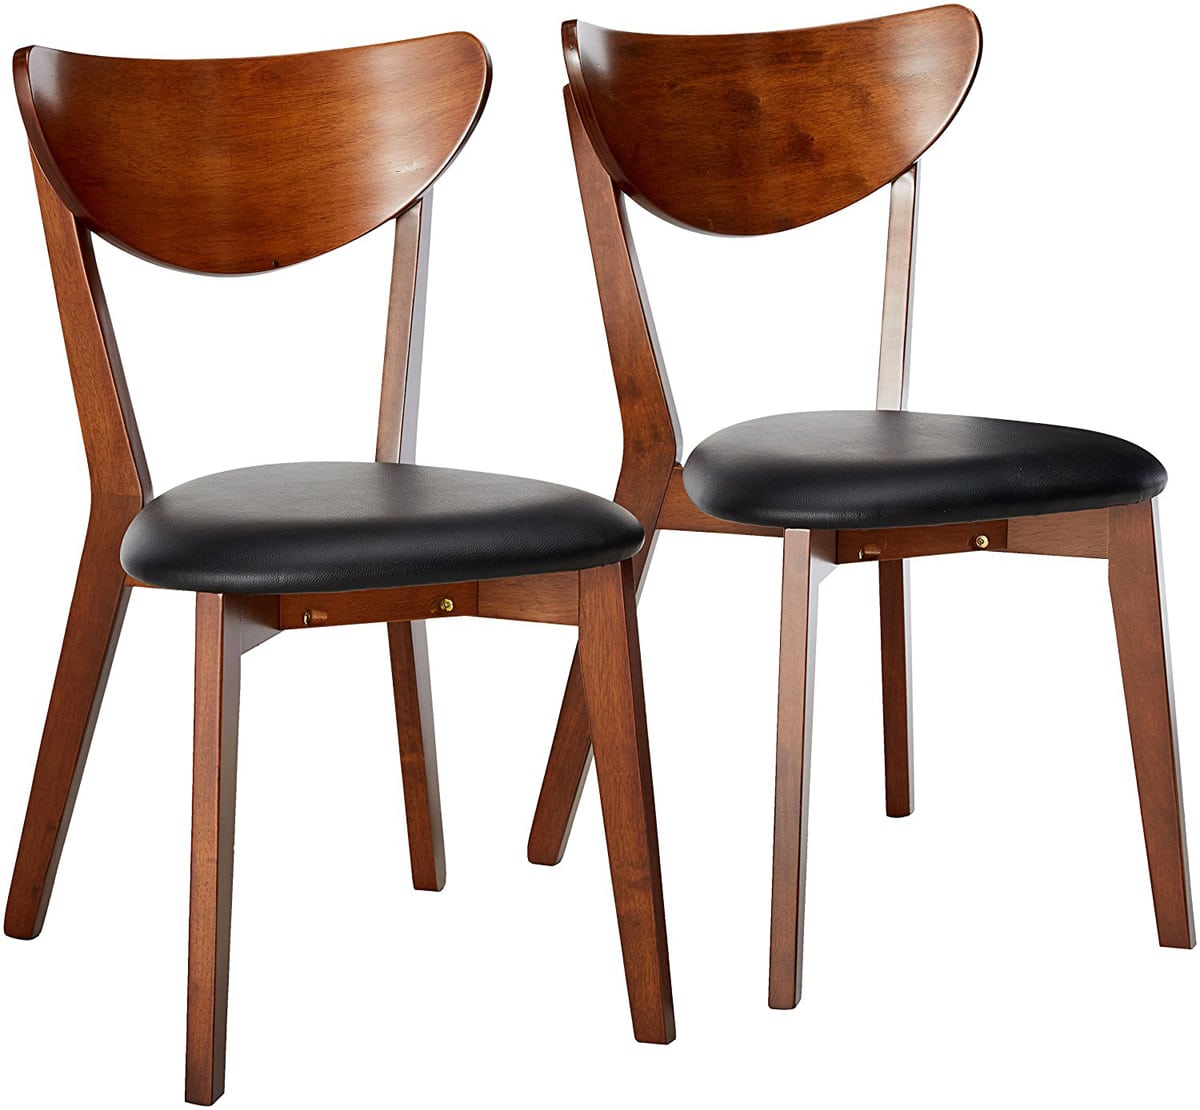 The Most Beautiful Kitchen Chairs You Can Buy on Amazon for $100 or Less: gallery image 2